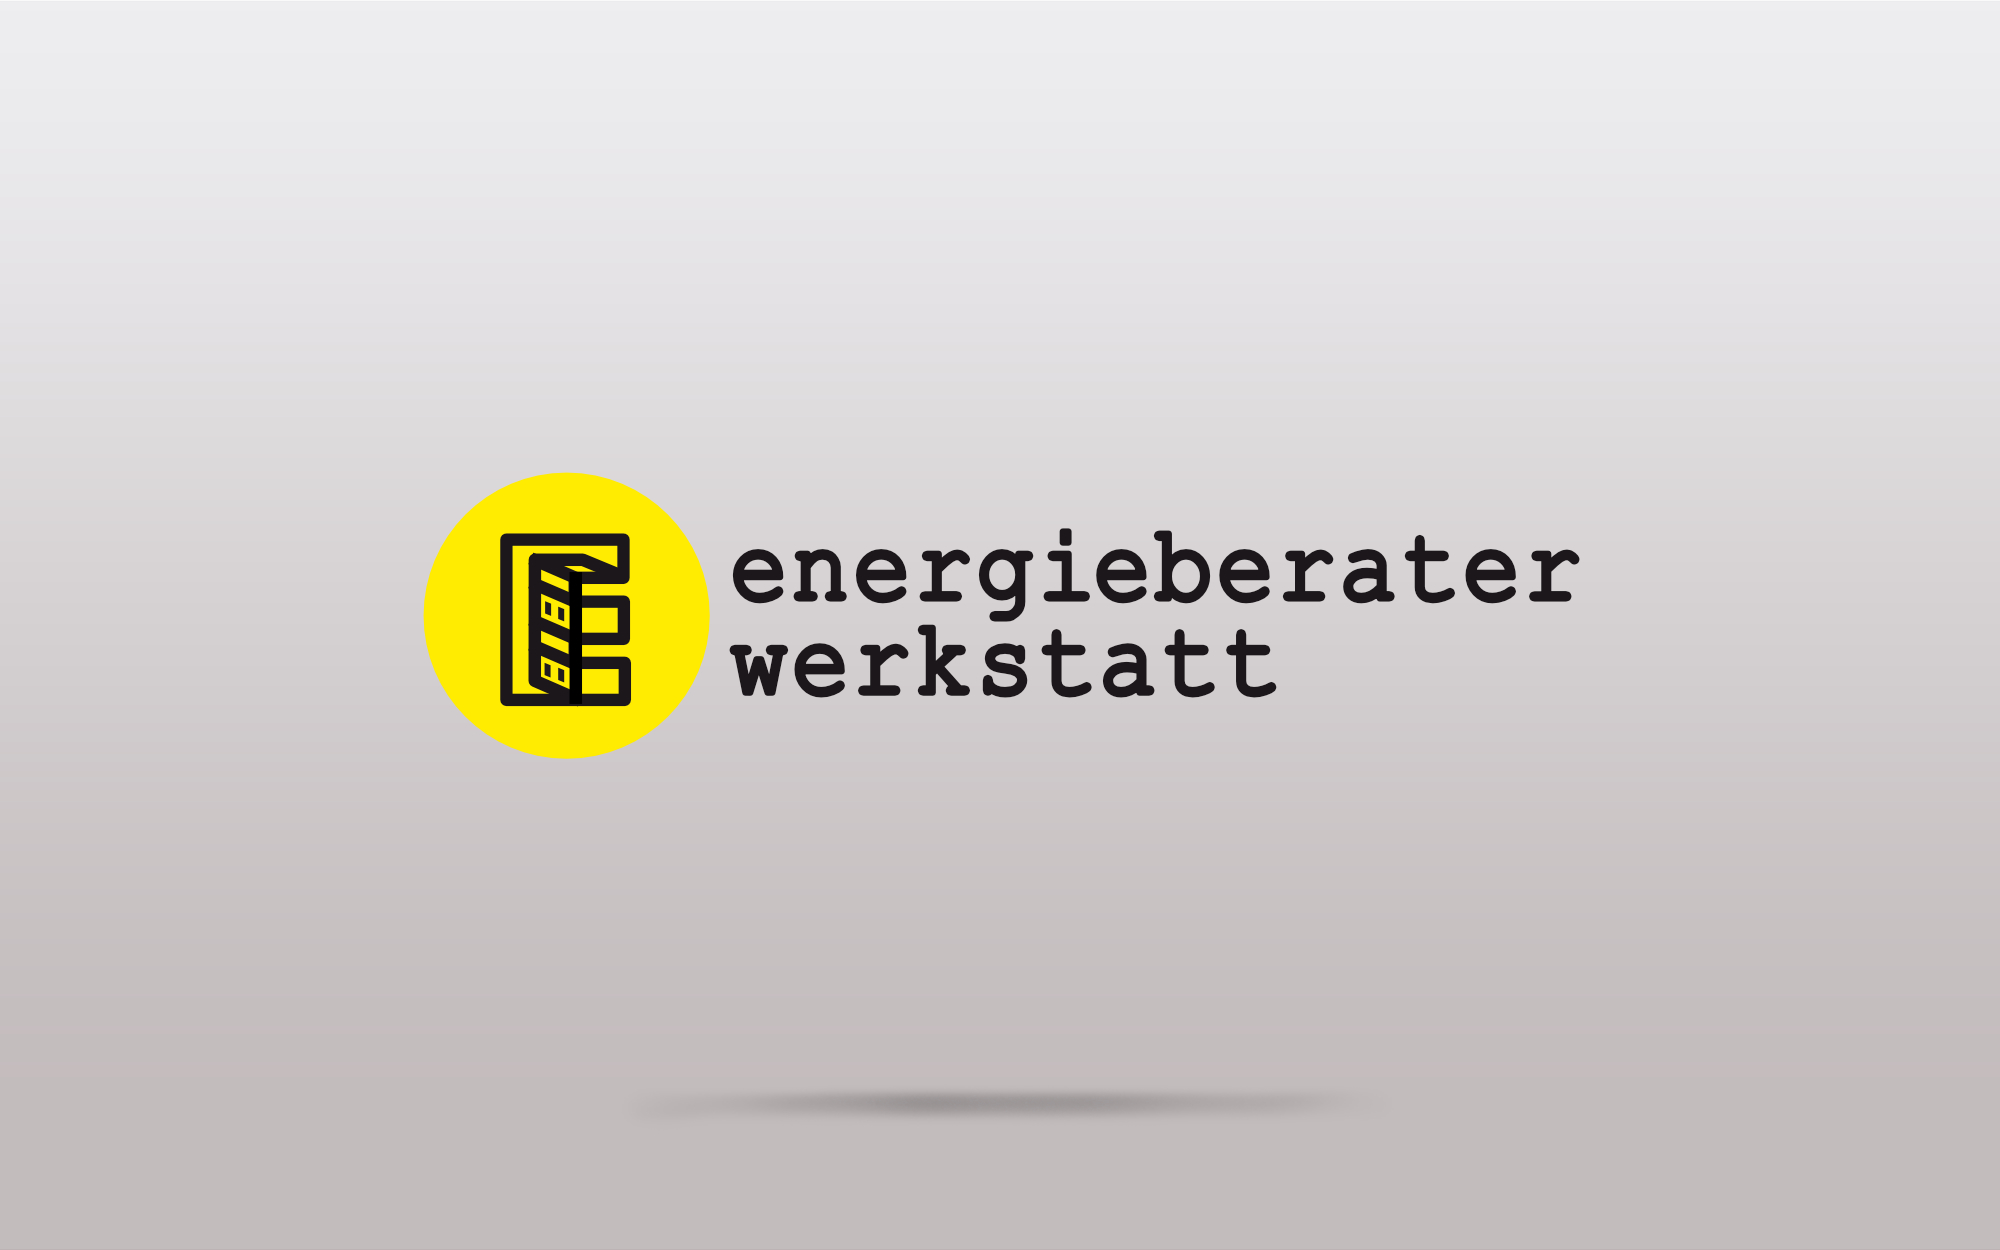 Corporate Design - Energieberater Werkstatt